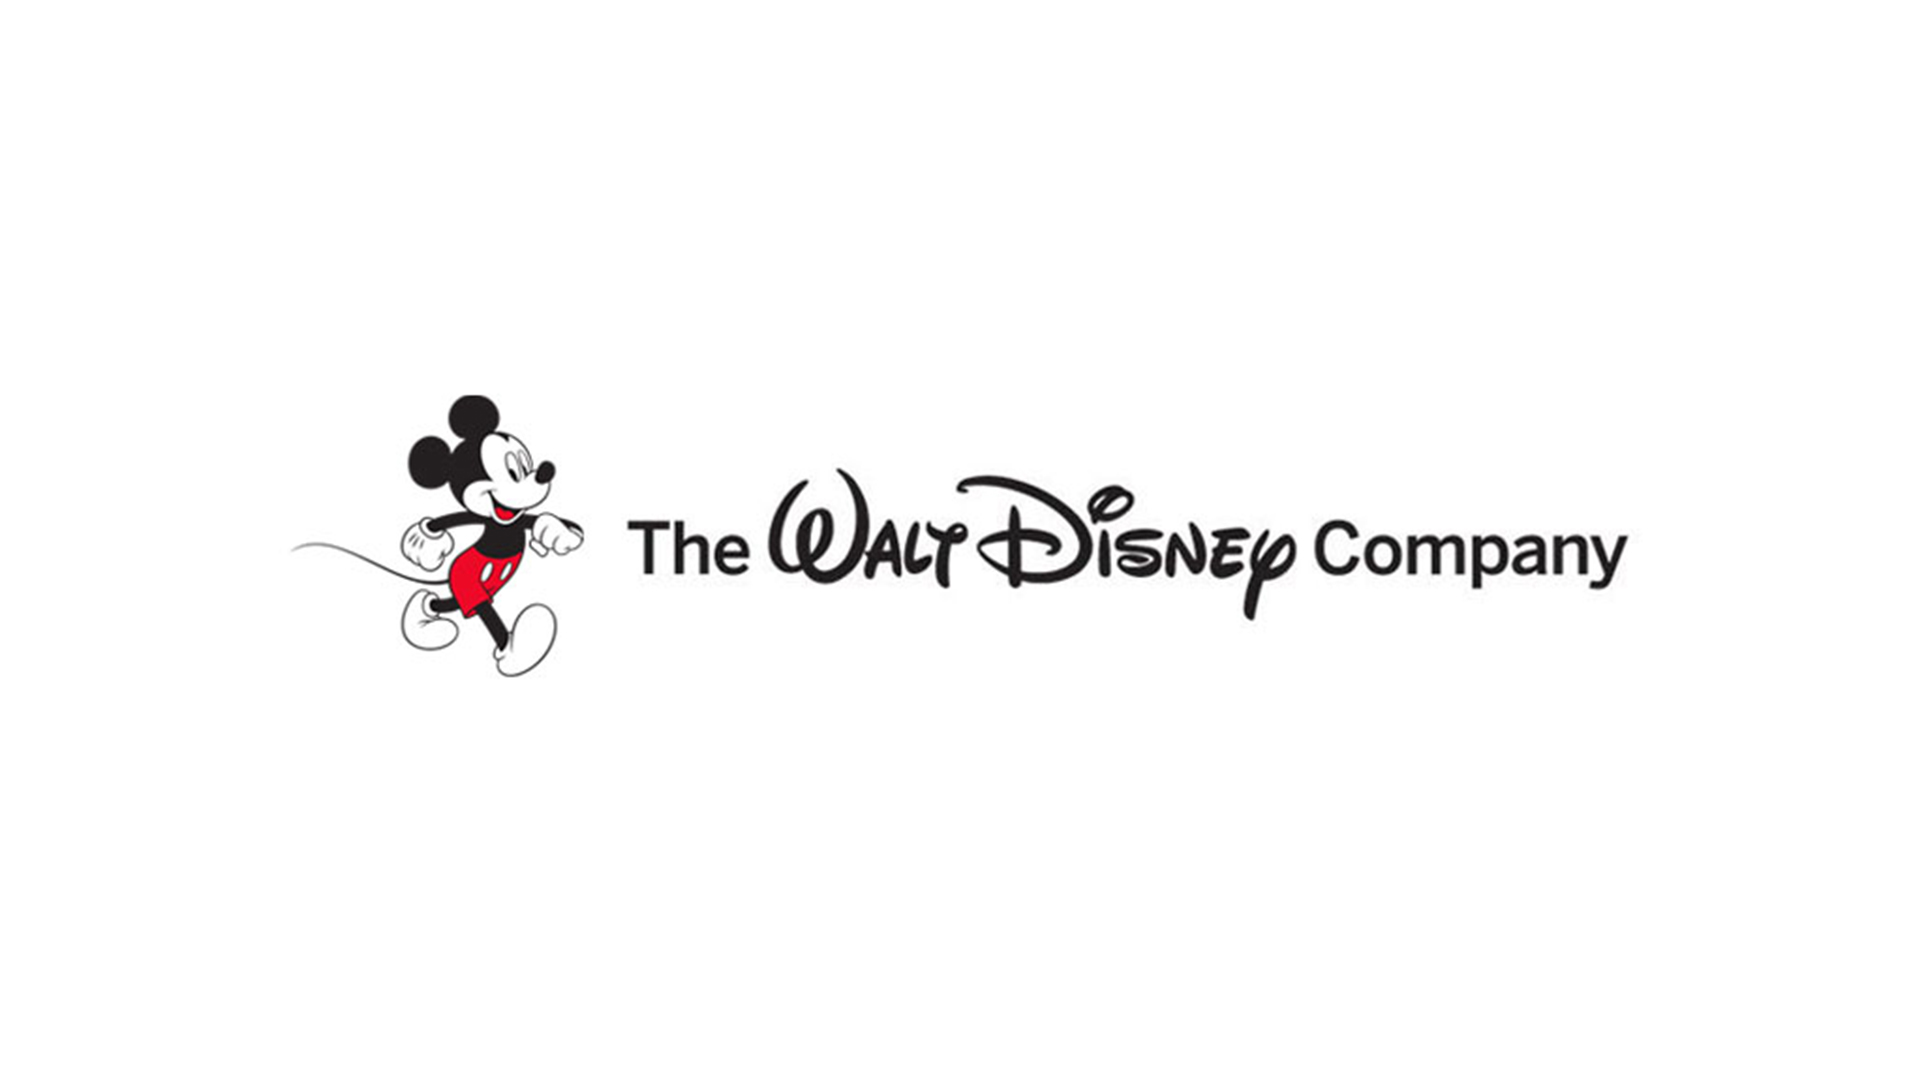 Disney Announced Its Fourth Quarter Results For 2020